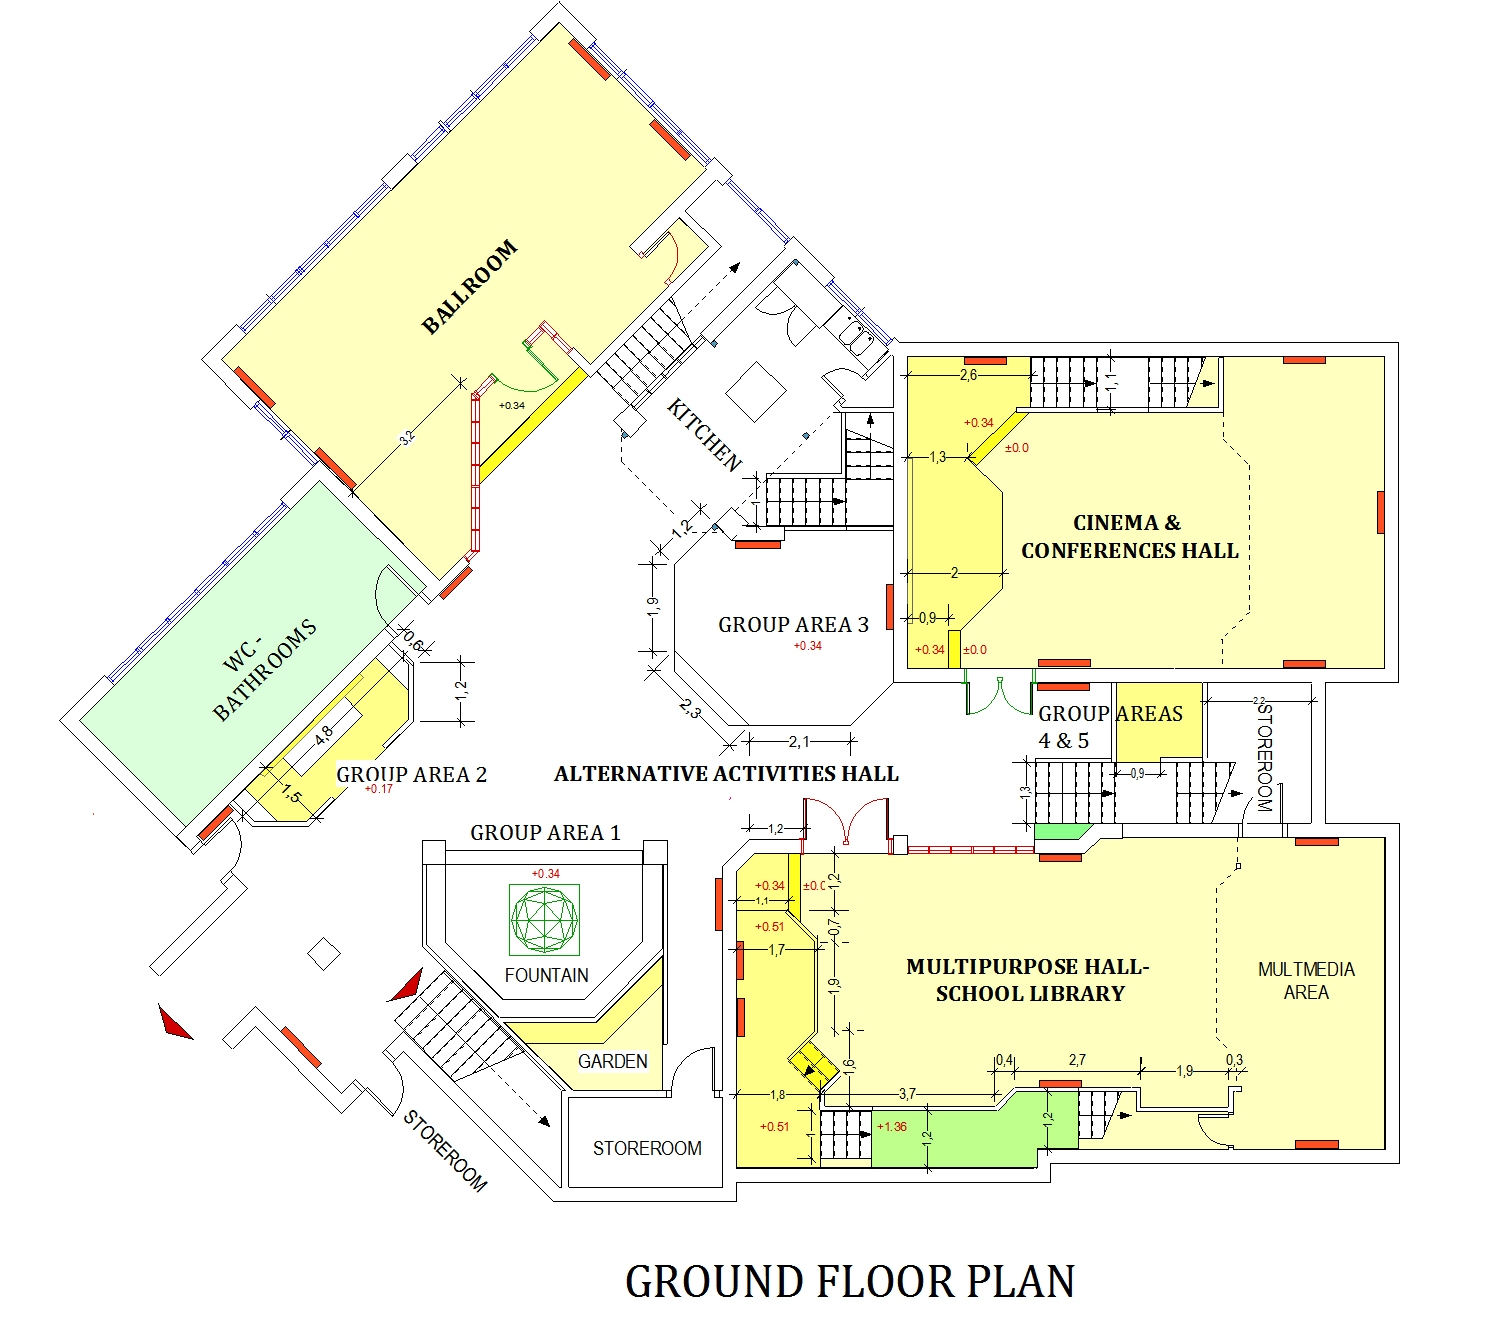 The ECSC plan, after redesign. On the ground floor, a complex of spaces for educational and cultural activities.